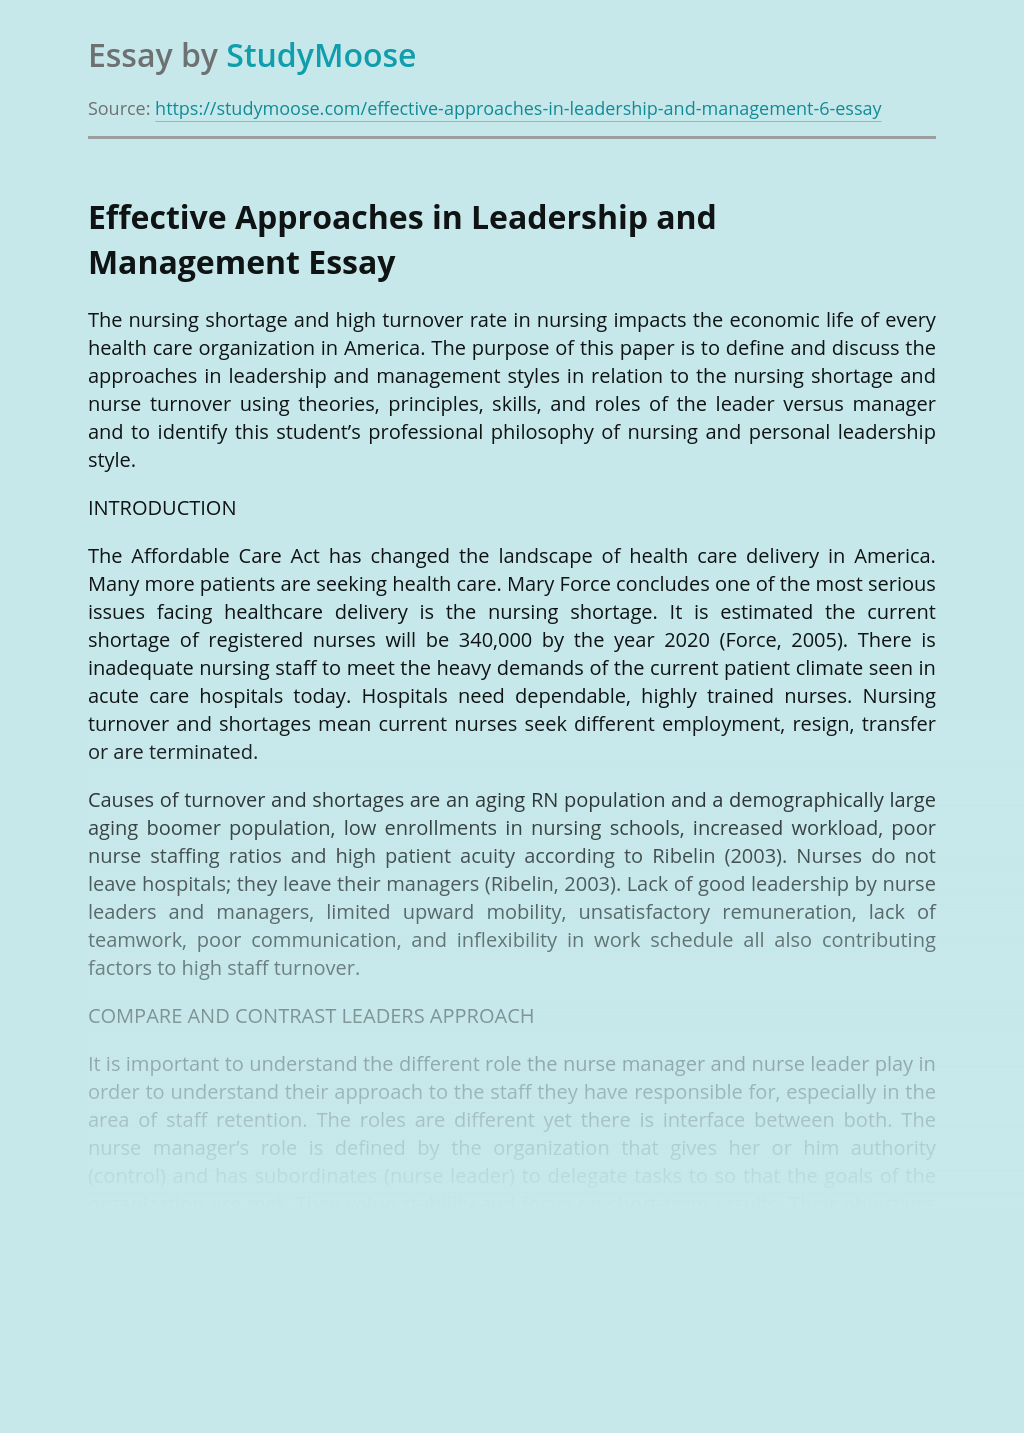 Effective Approaches in Leadership and Management: Nursing Turnover